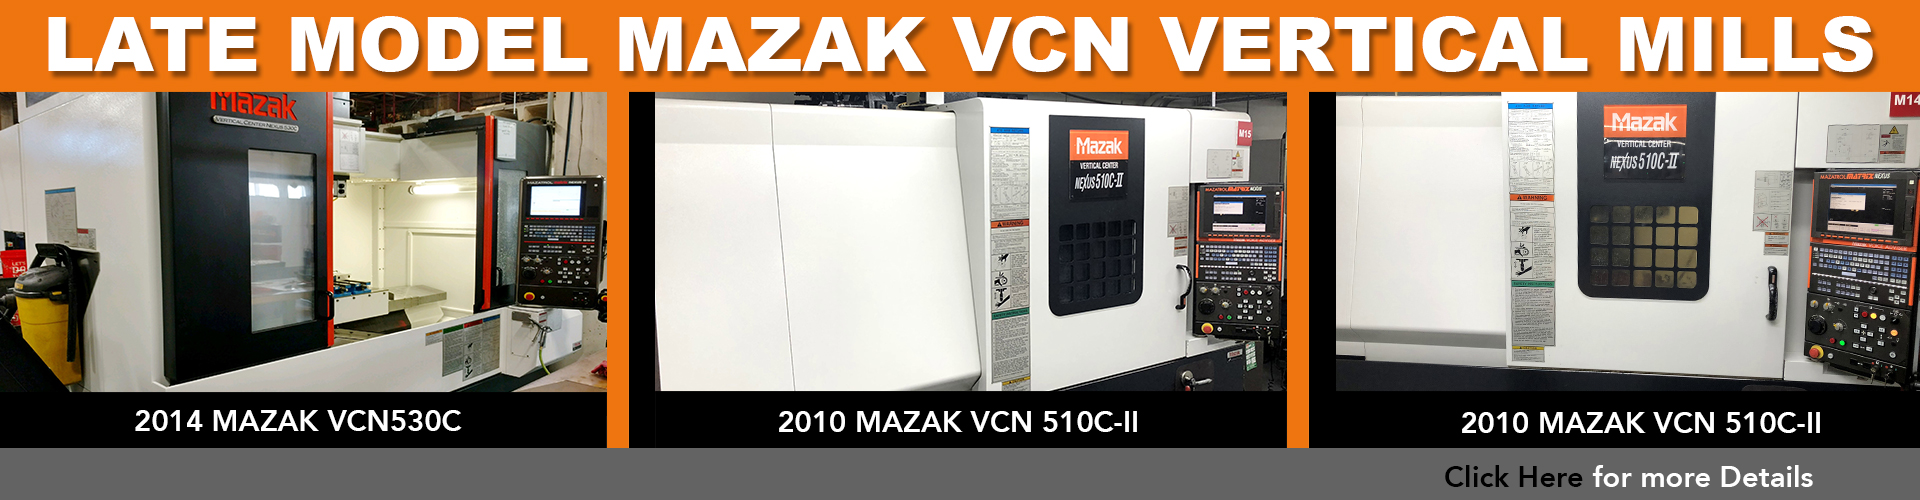 Resell CNC - Used CNC Machines & Used Mazak Lathes